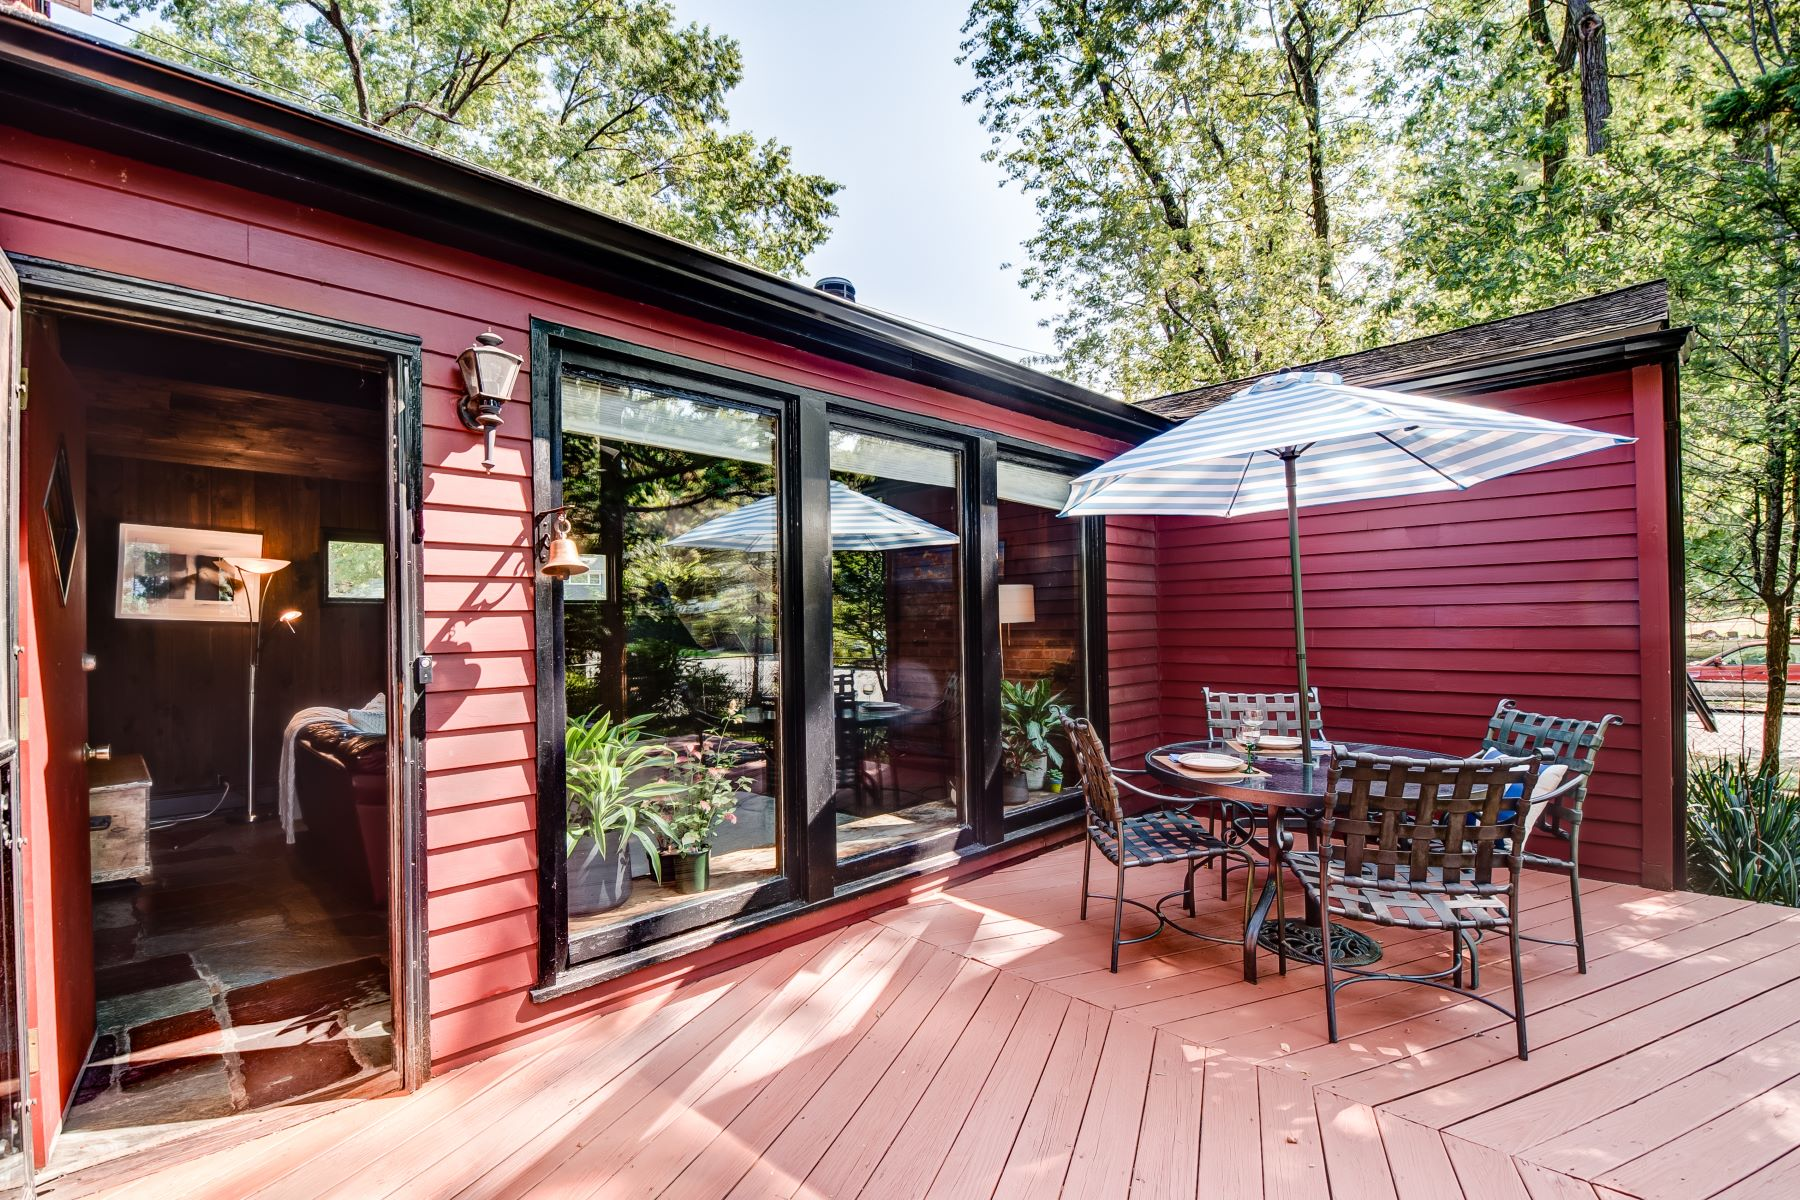 Single Family Homes for Sale at Stunning Mid-Century Capecod 61 Rosedale Avenue Hastings On Hudson, New York 10706 United States